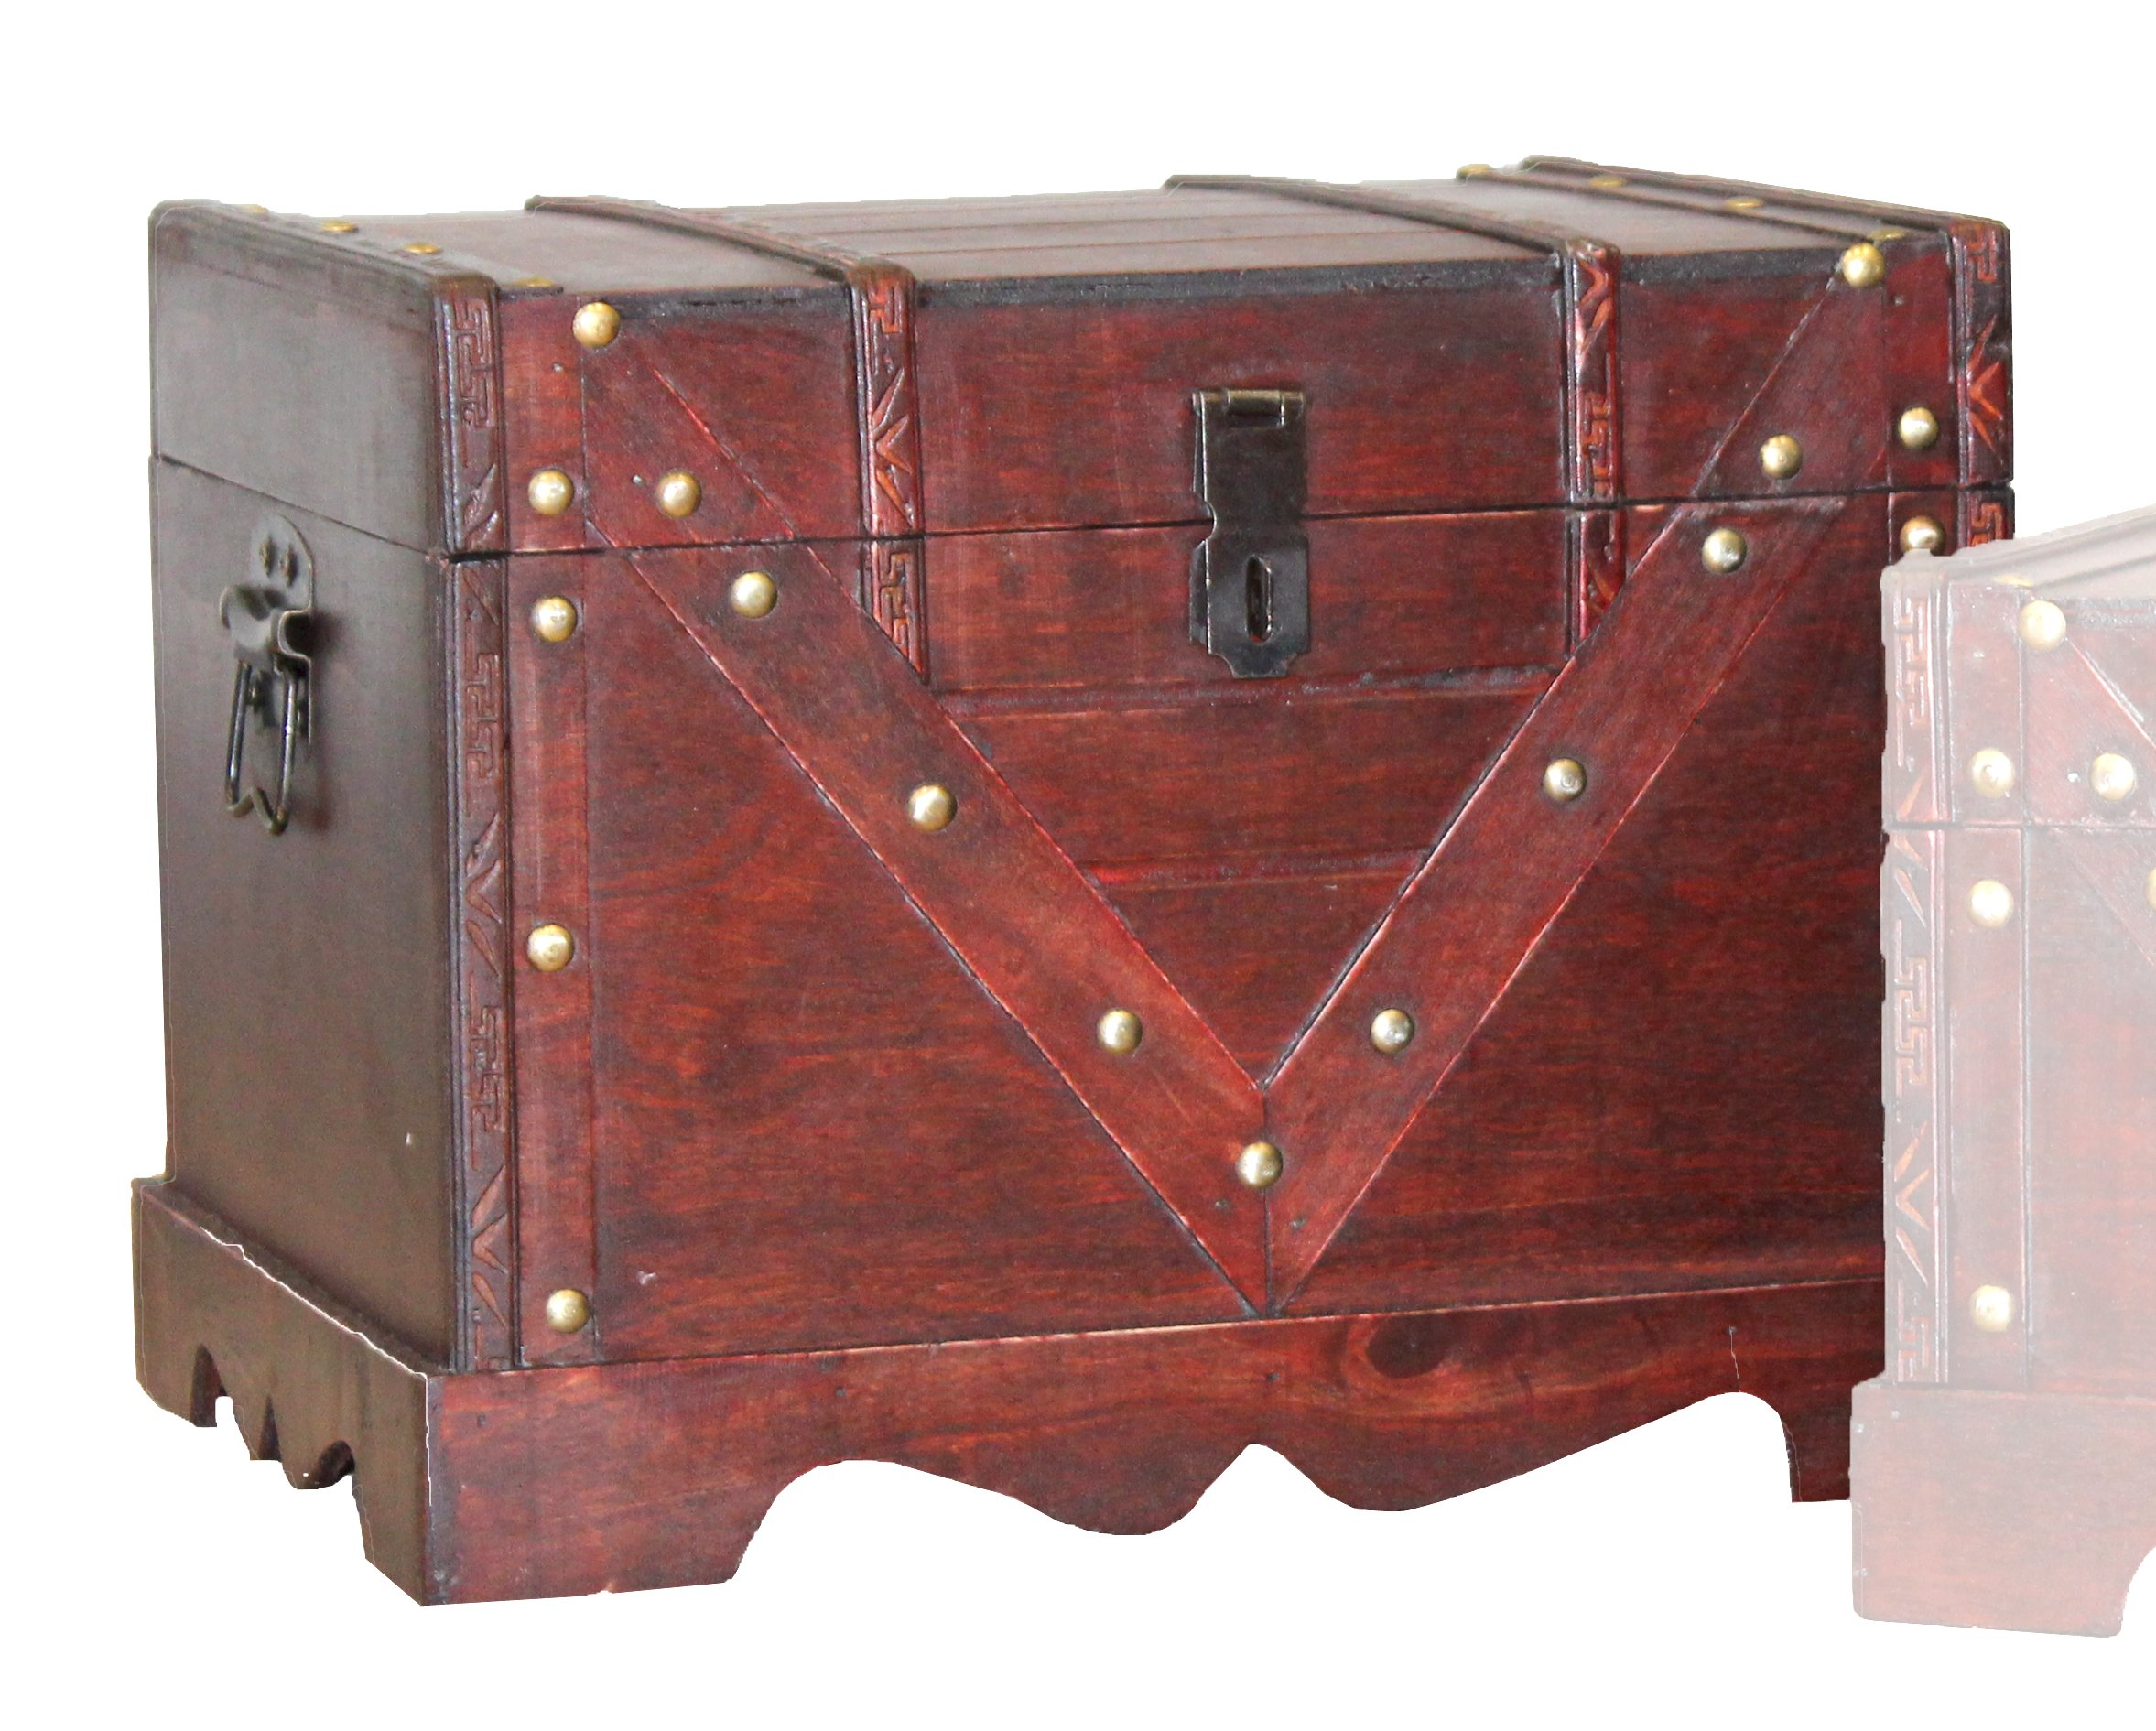 Vintiquewise QI003315.L Large Wooden Box, Old Style Decorative Treasure Chest